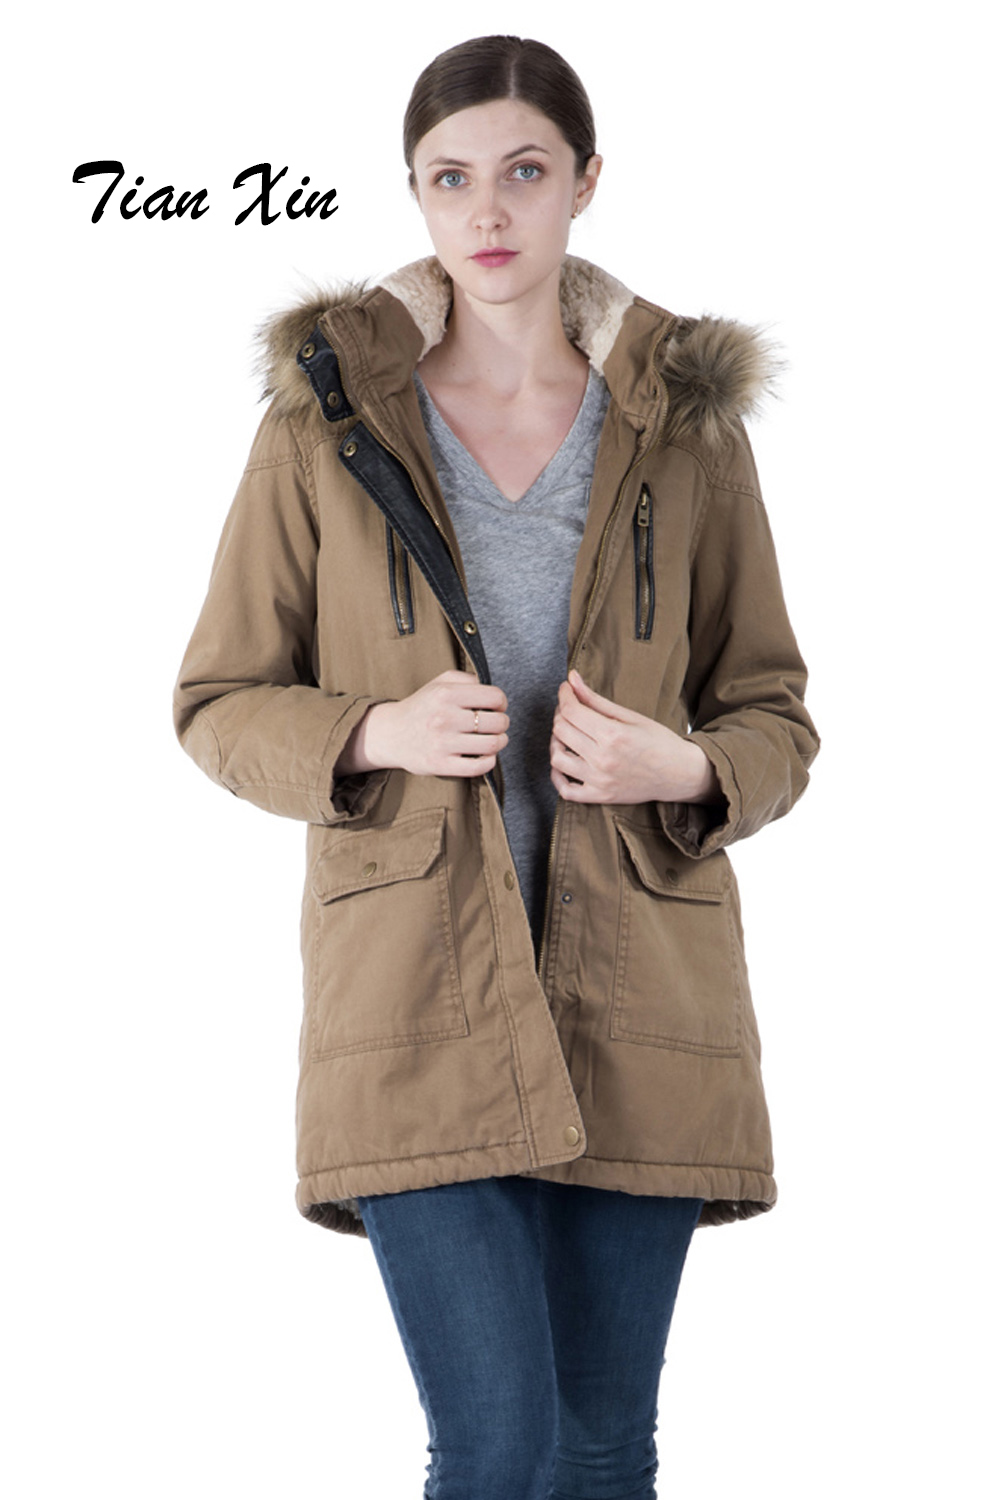 Women Winter Outwear Coat Hooded Fleece Lined Zipper Hooded Parka Flap Pocket Long Sleeves Cotton Parka faux suede fleece lined winter coat